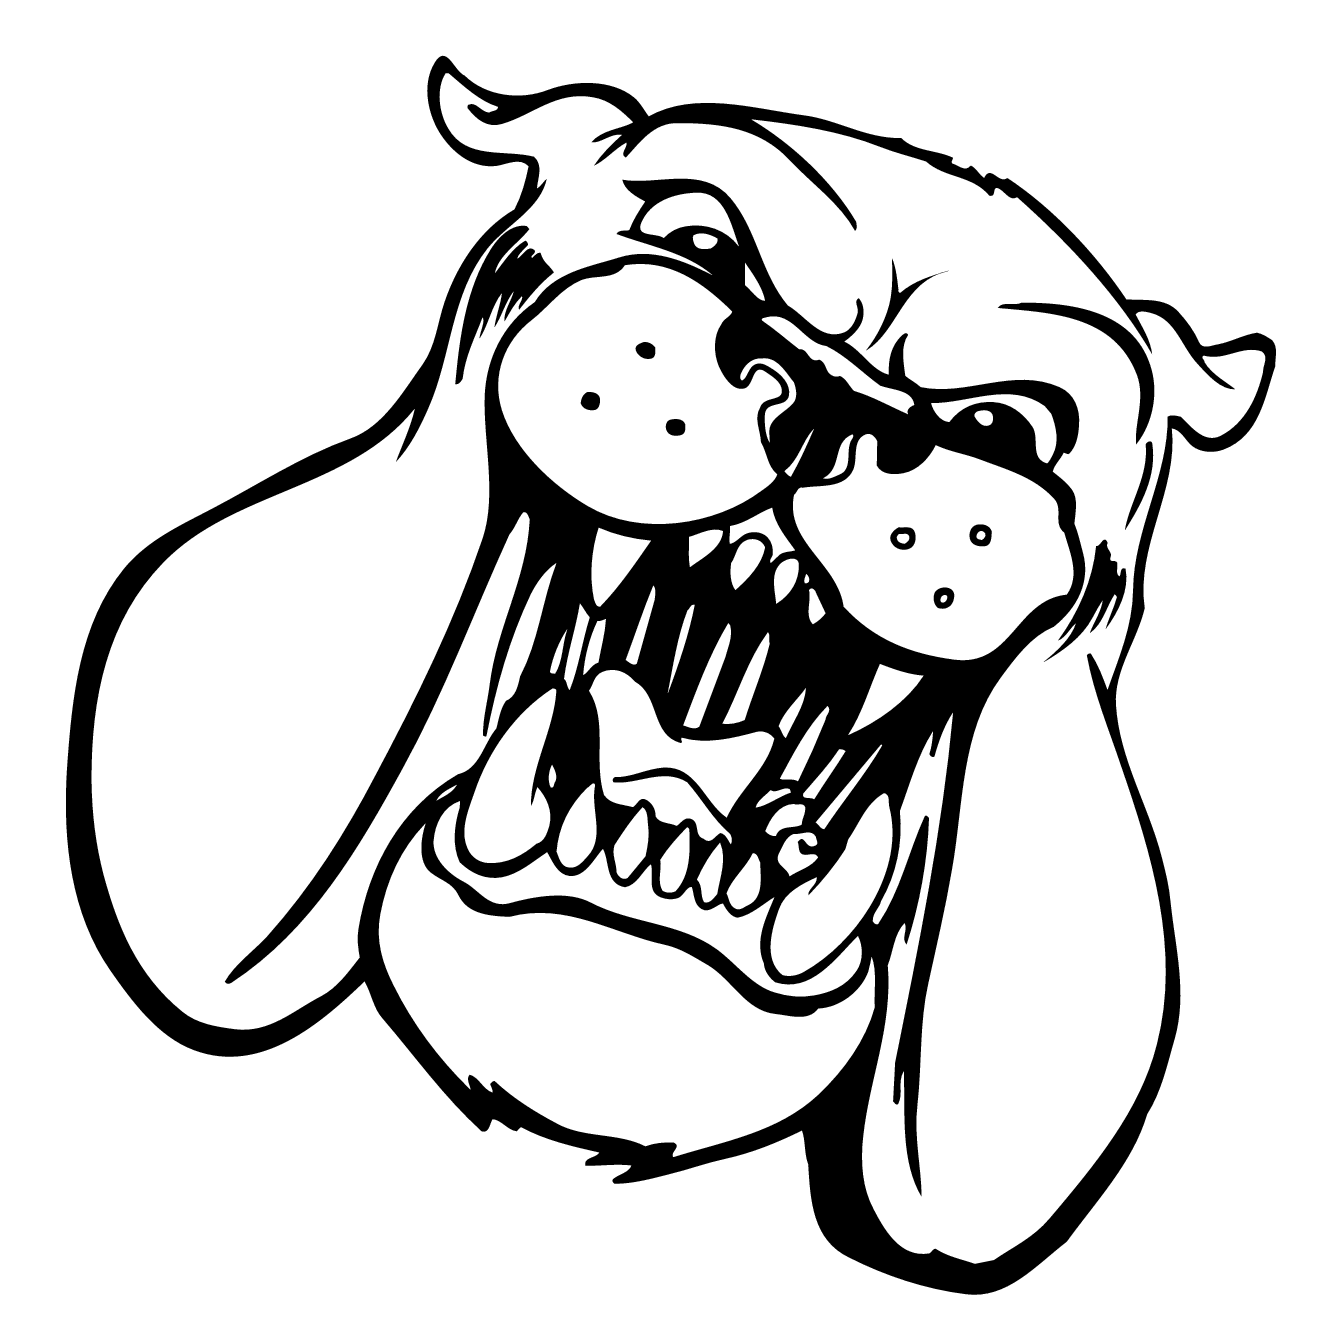 1317x1317 Bulldog Clipart Black And White Free Clipart Images 2